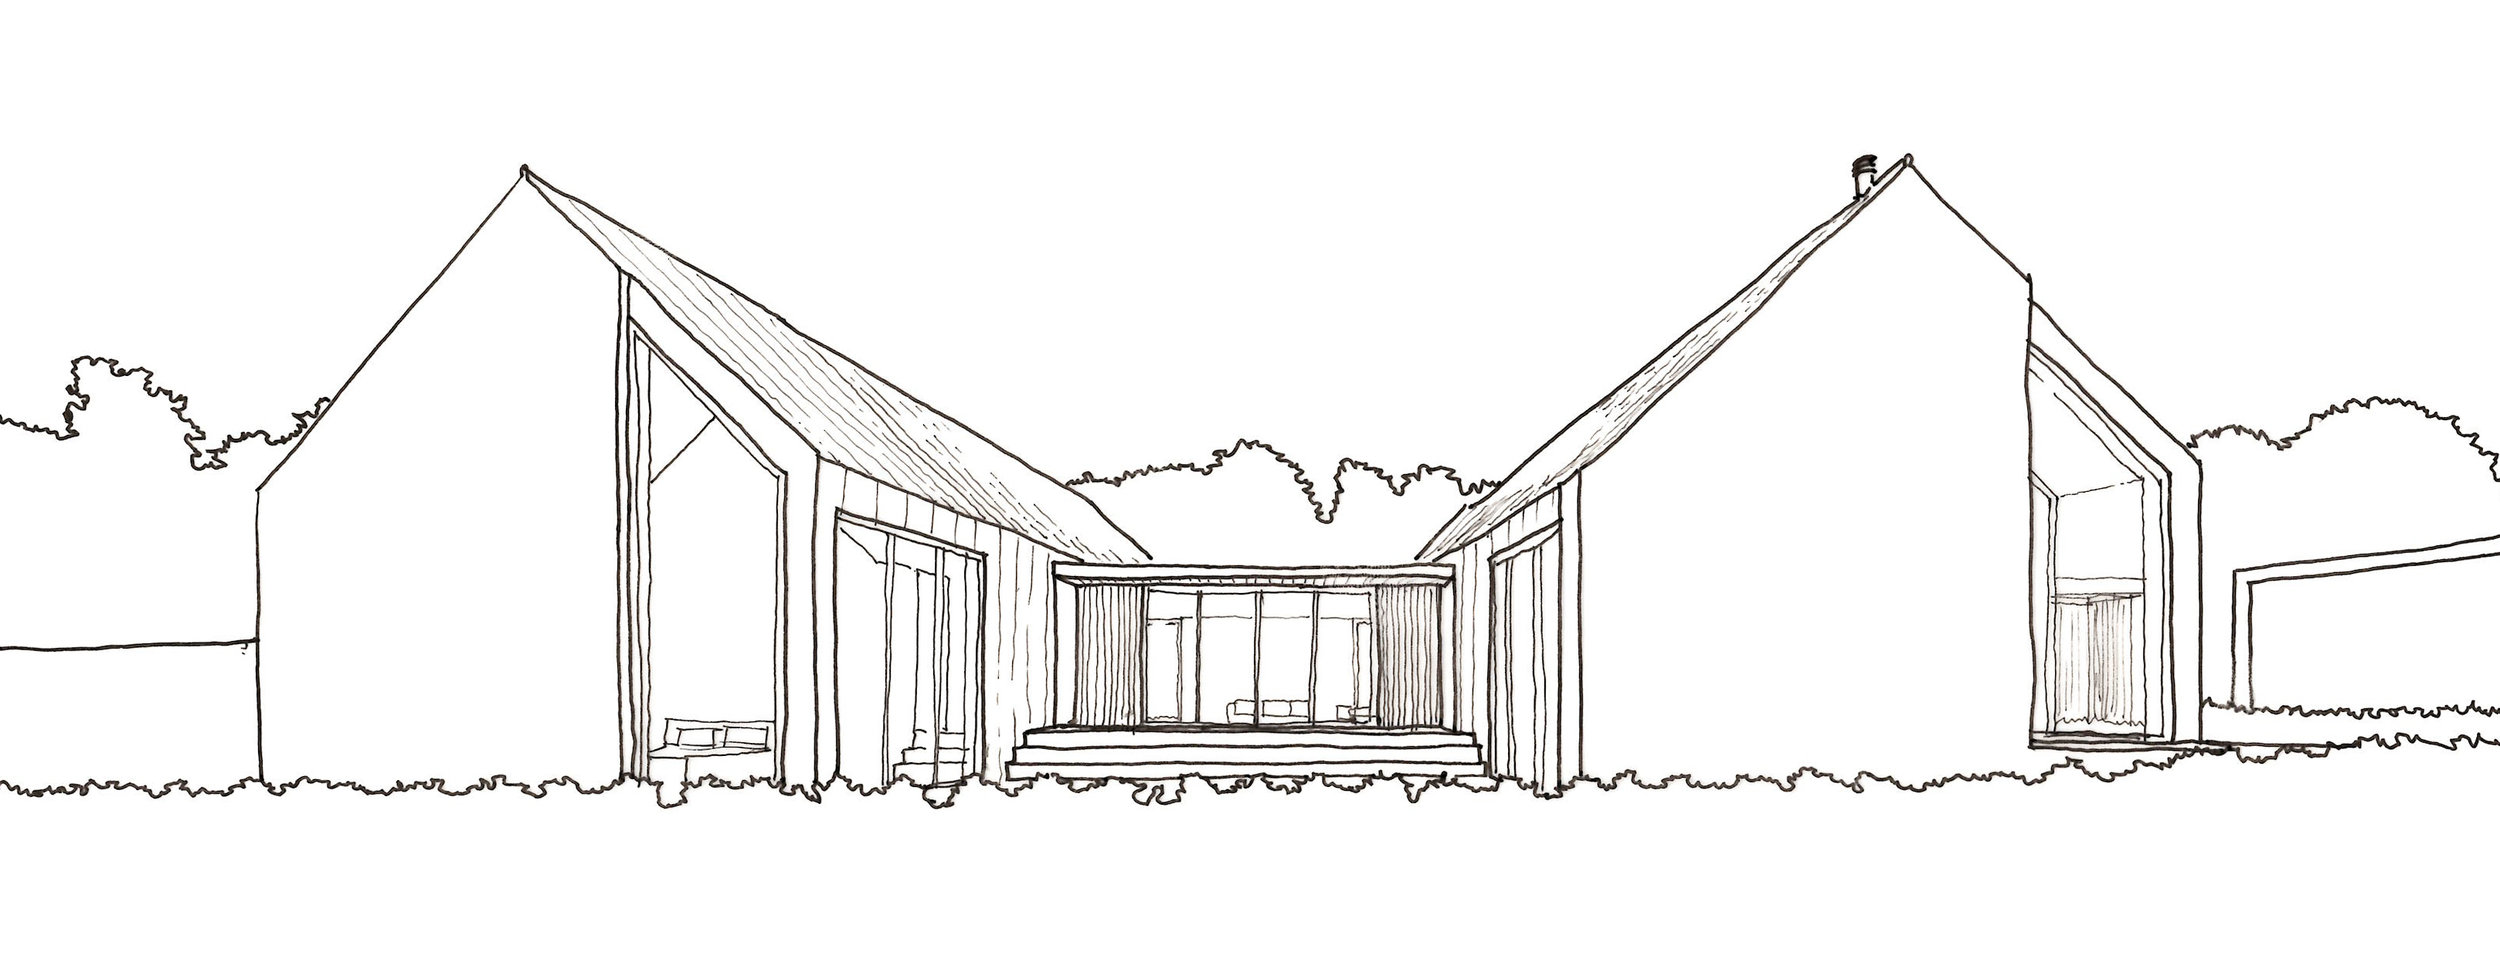 Sketch view of courtyard